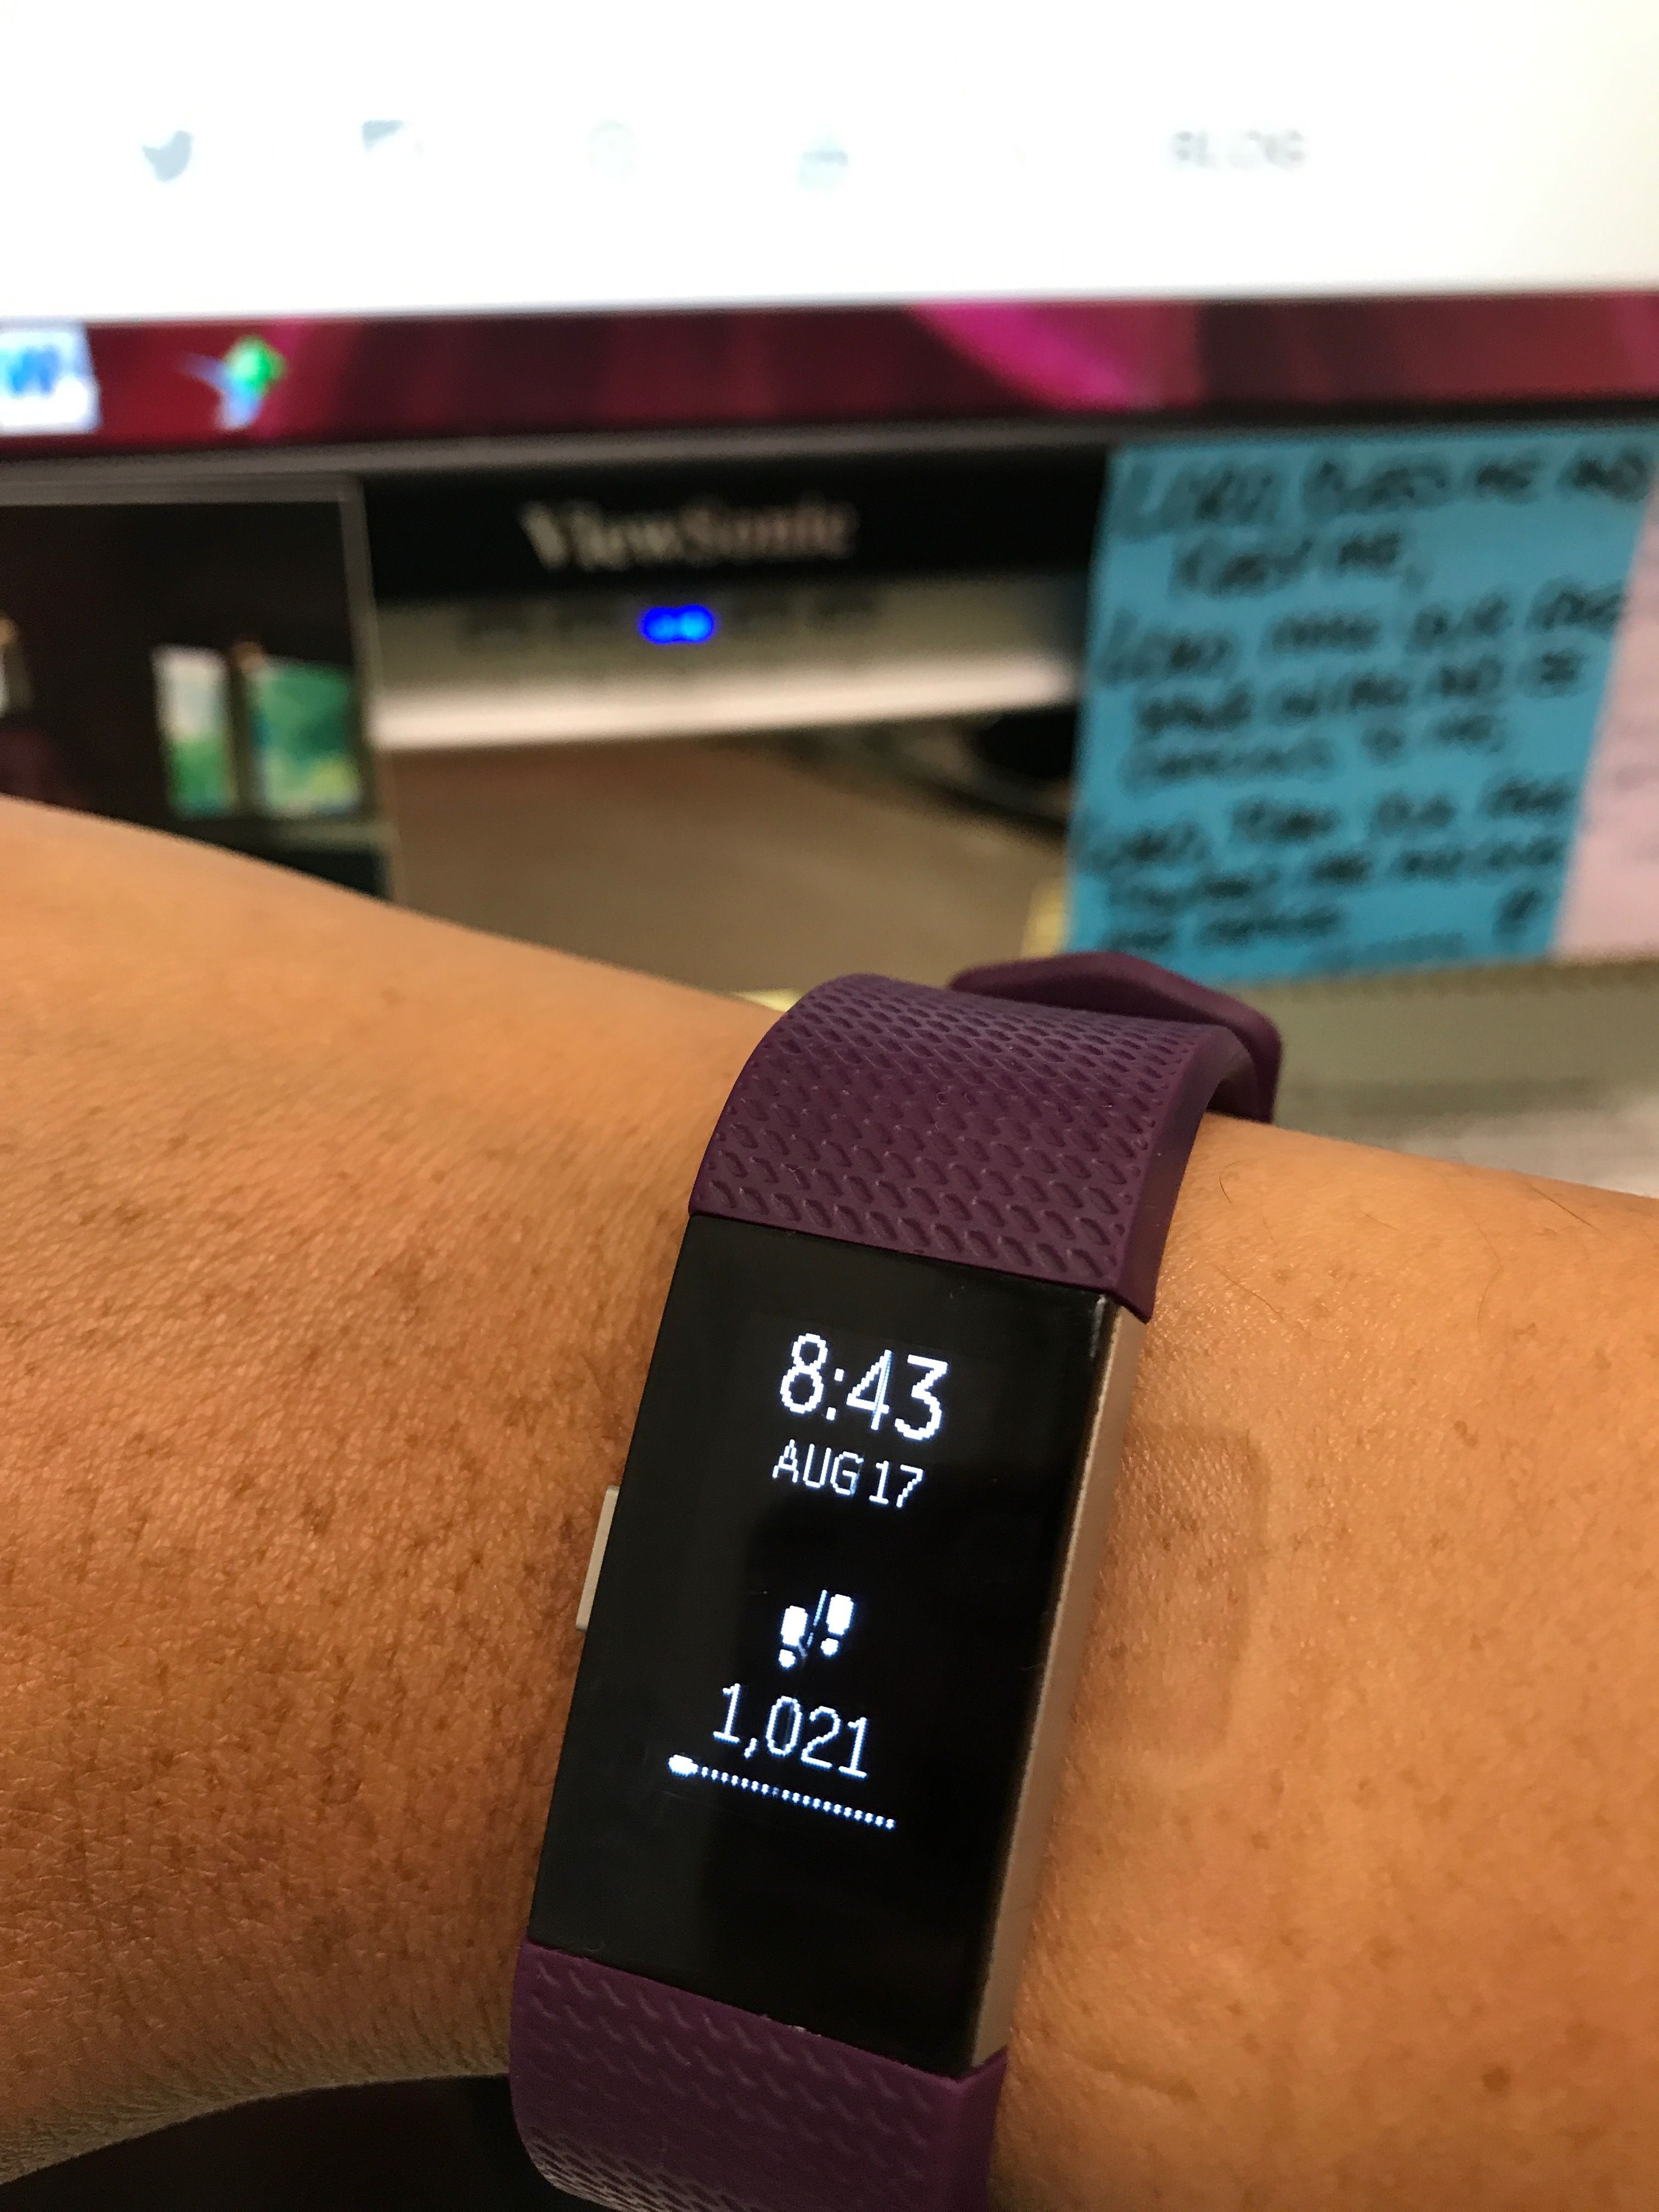 Cracked Fitbit Charge 2 Screen - Page 3 - Fitbit Community